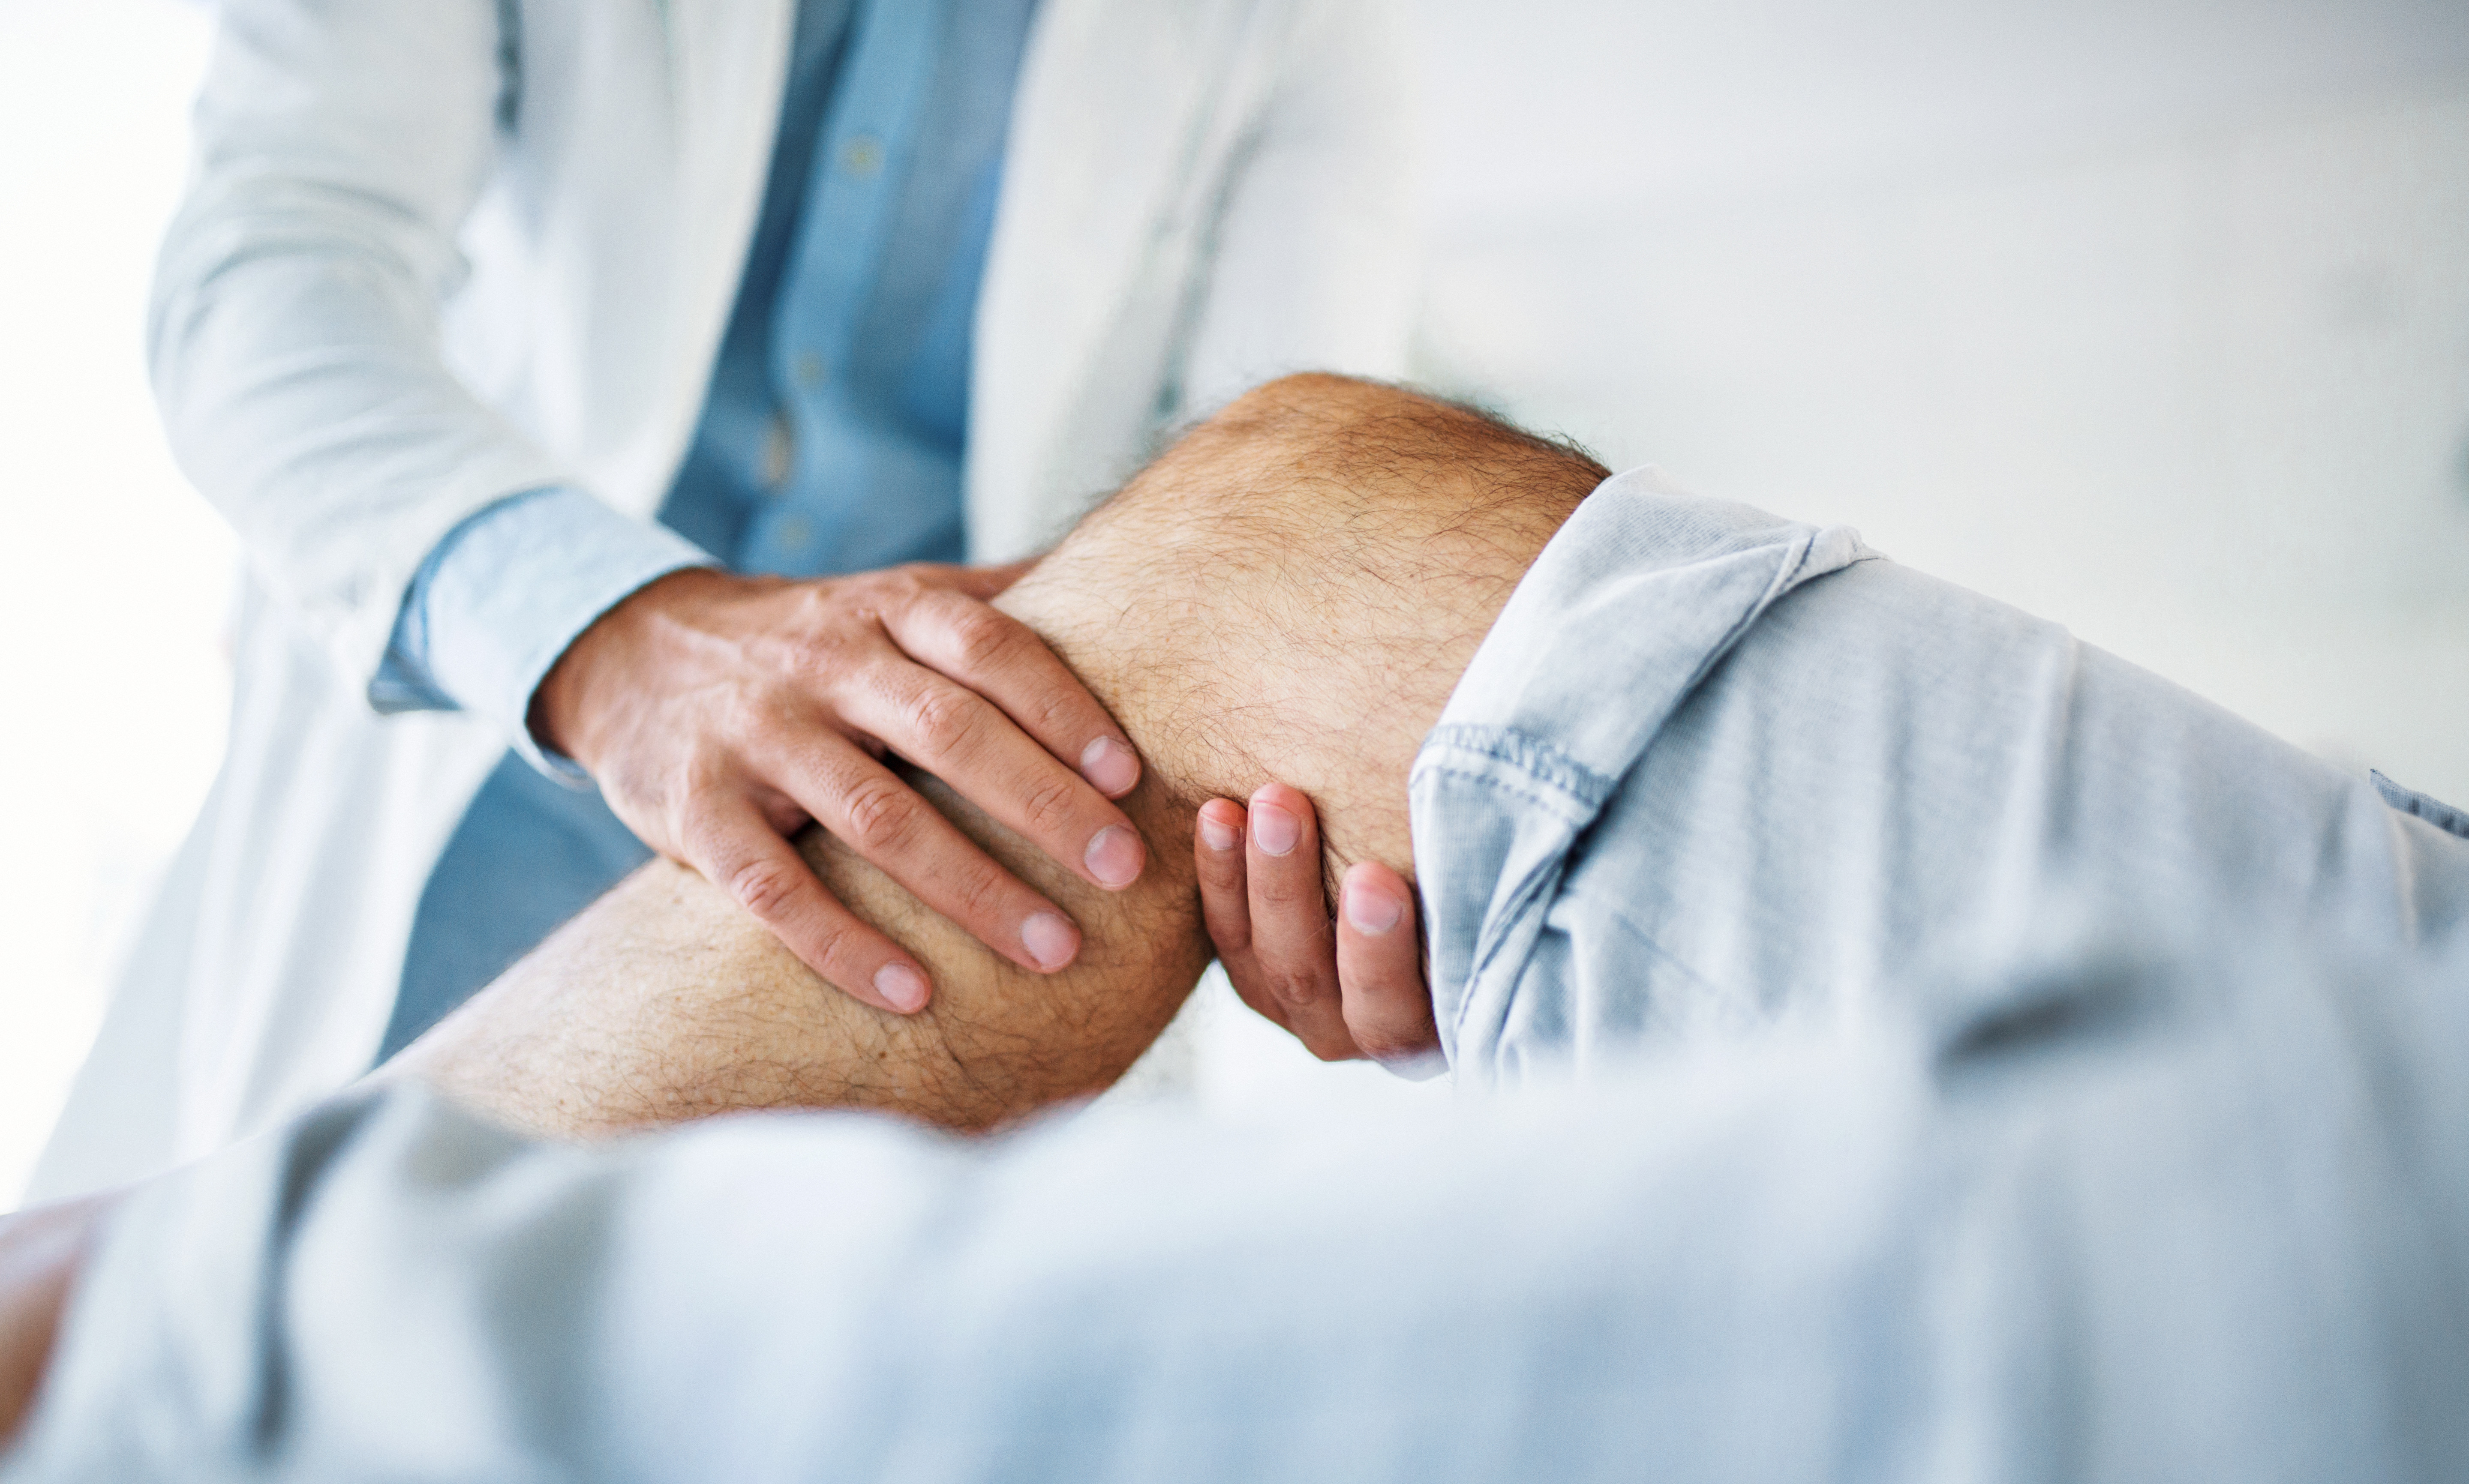 1 Session: One-on-One Pain Management